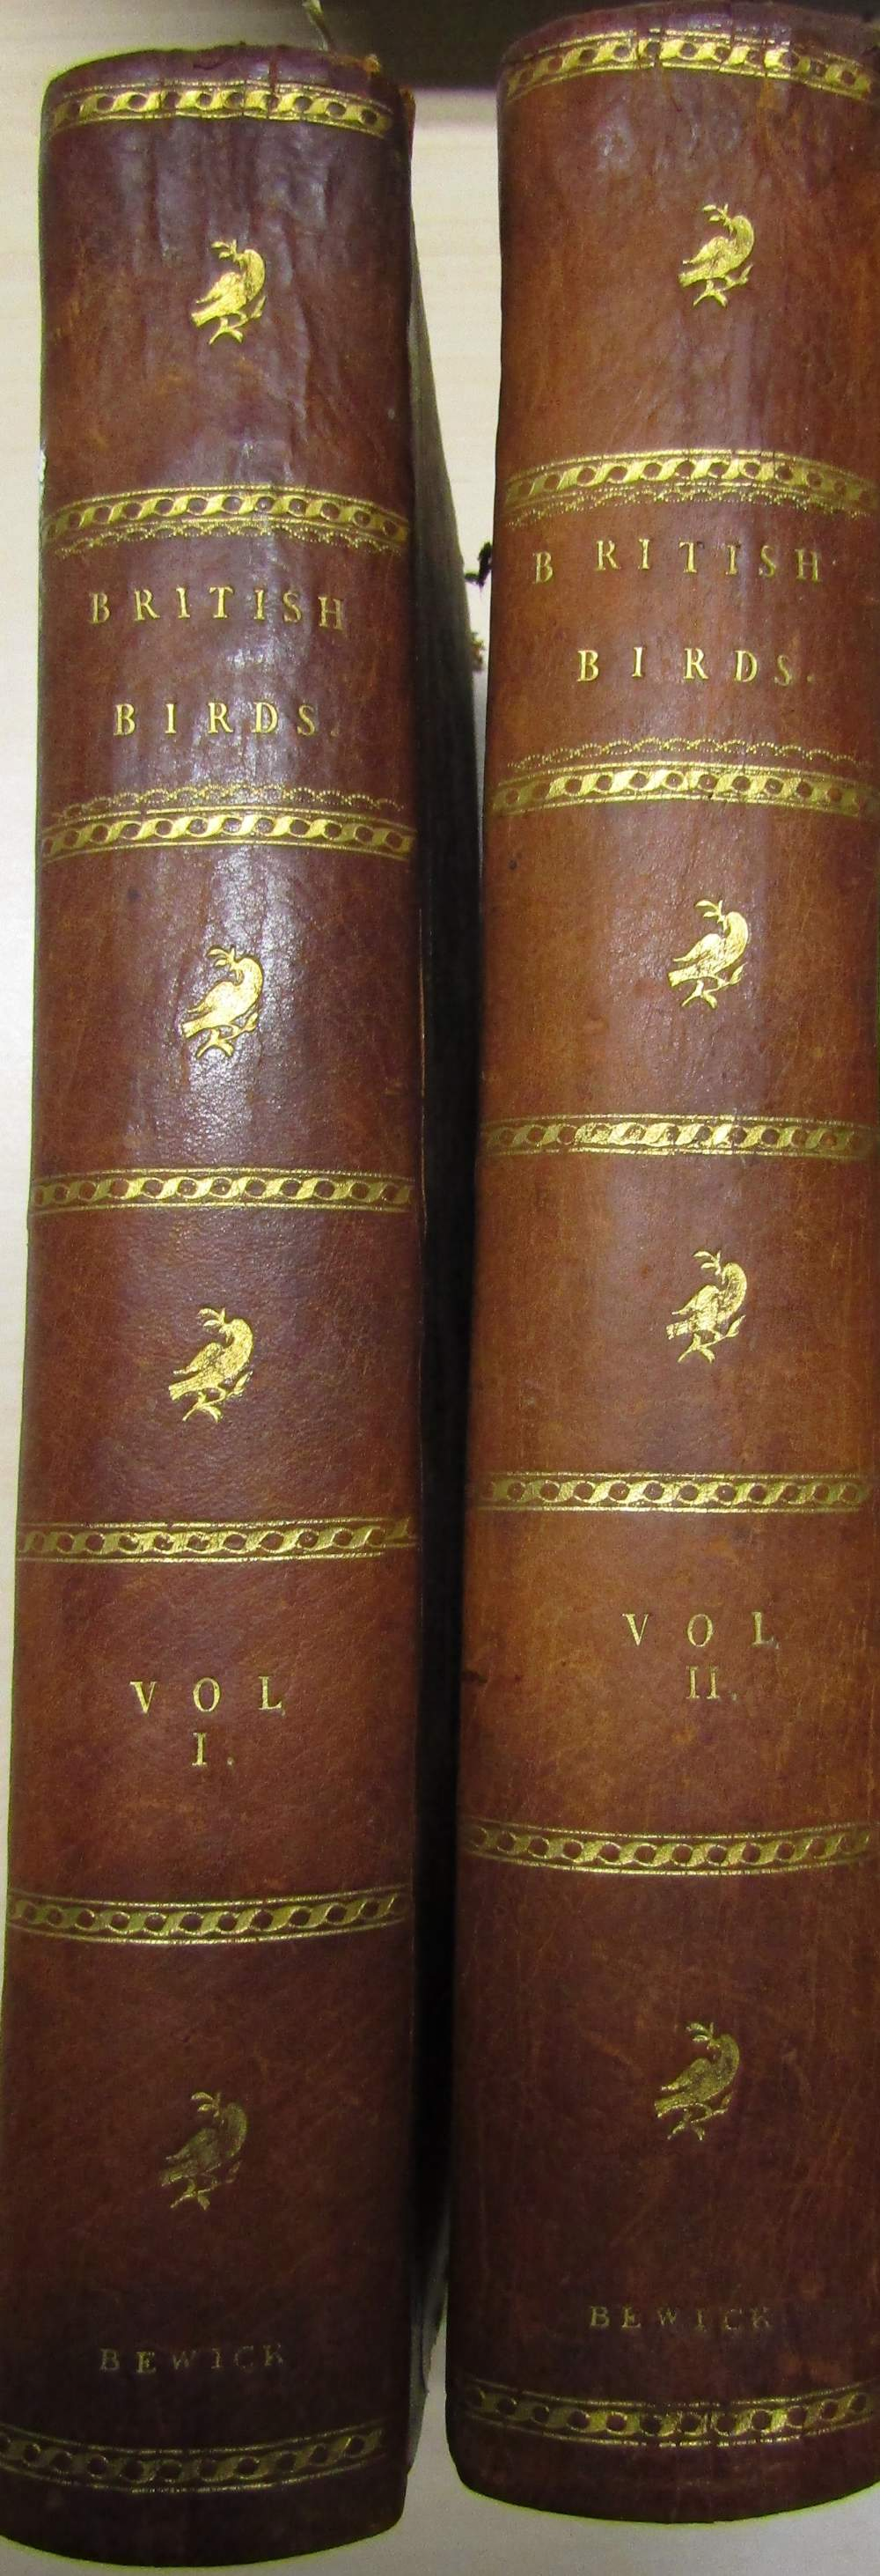 Lot 812 - BEWICK Thomas, A History of British Birds, printed by Edwards Walker, two volumes, 1805, Land and